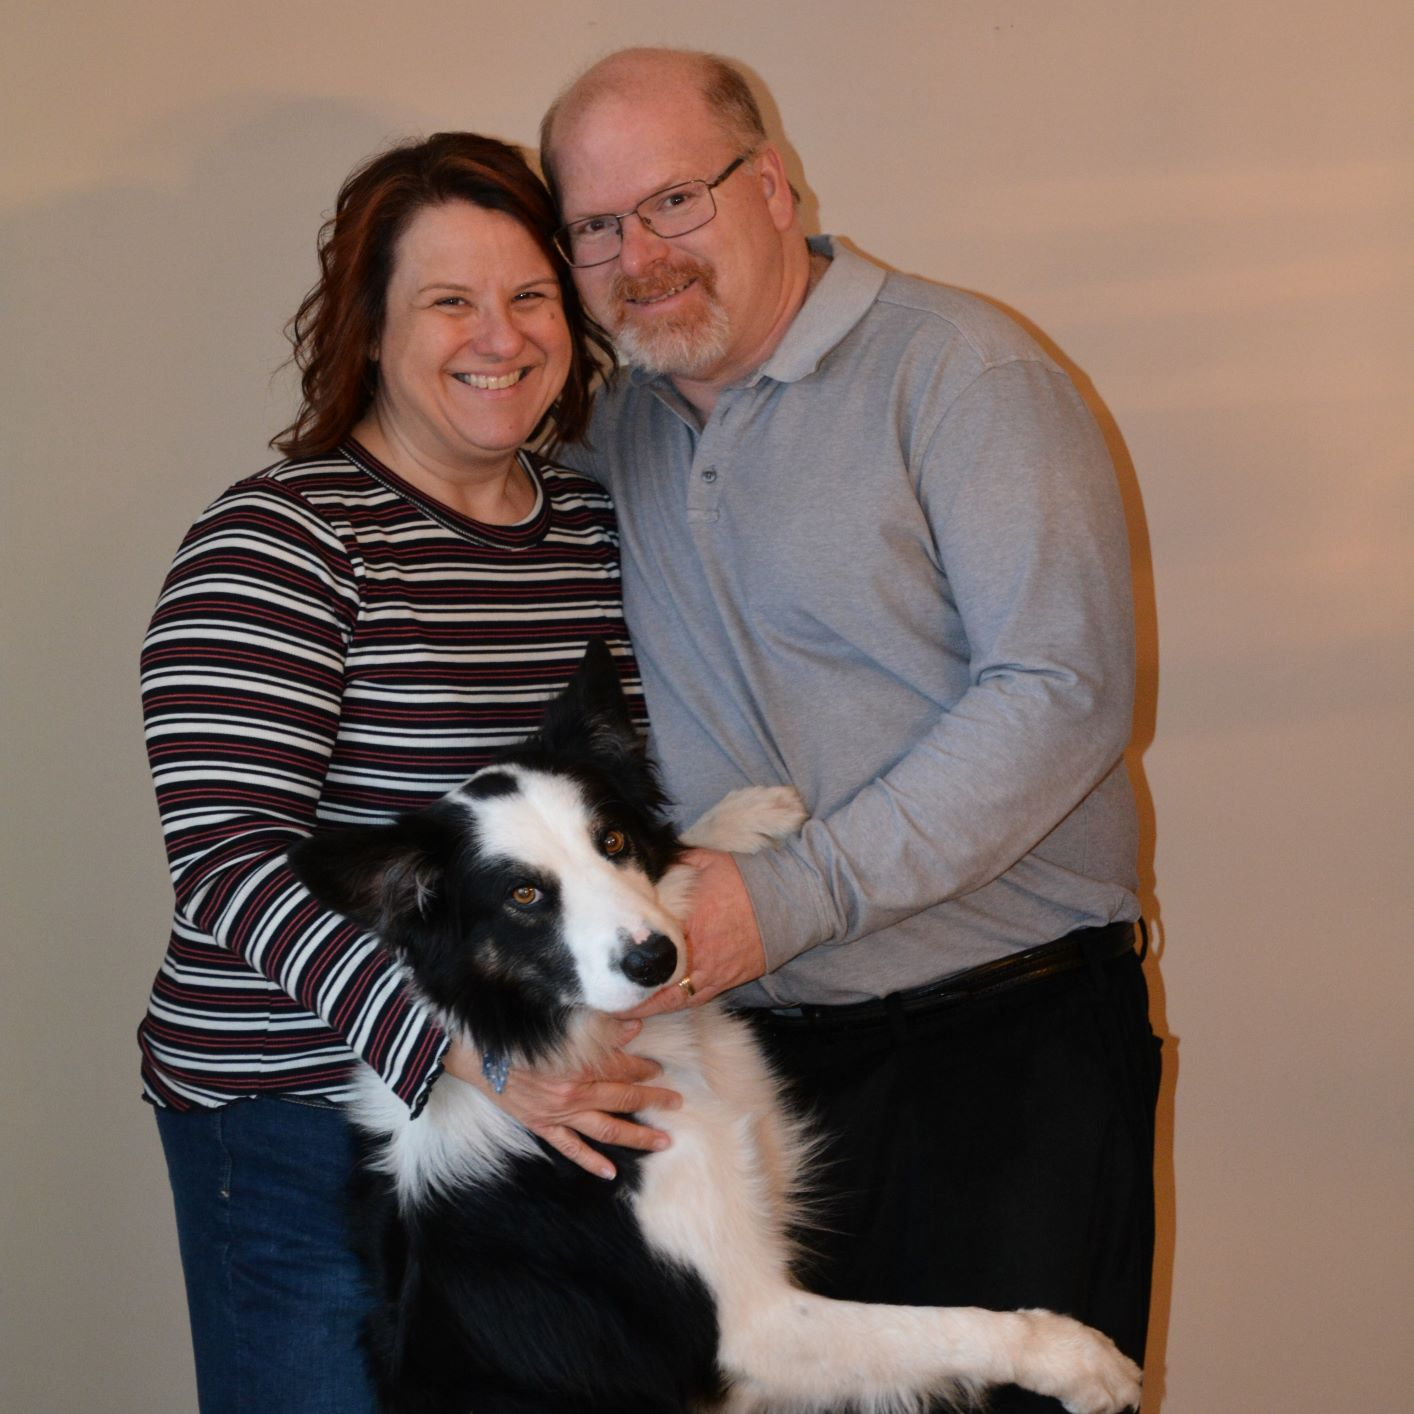 A photo of Donna Lake, her dog and her husband.